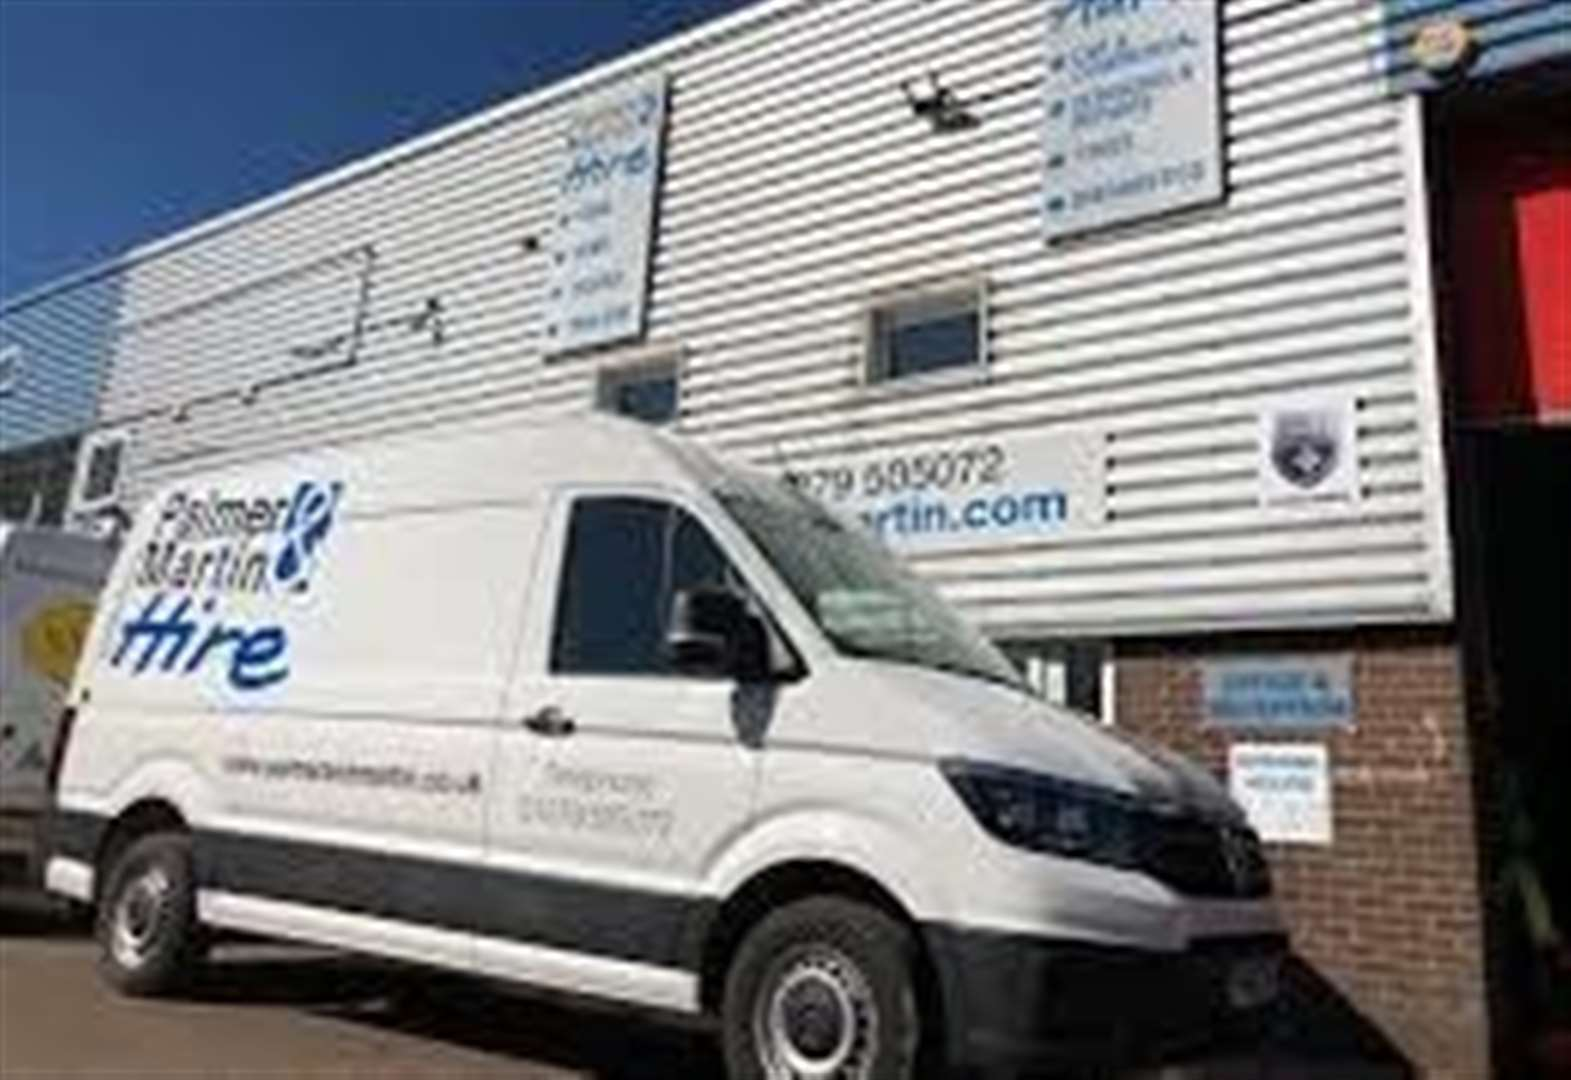 Police involved as man fails to return Mercedes van to Stortford hire firm